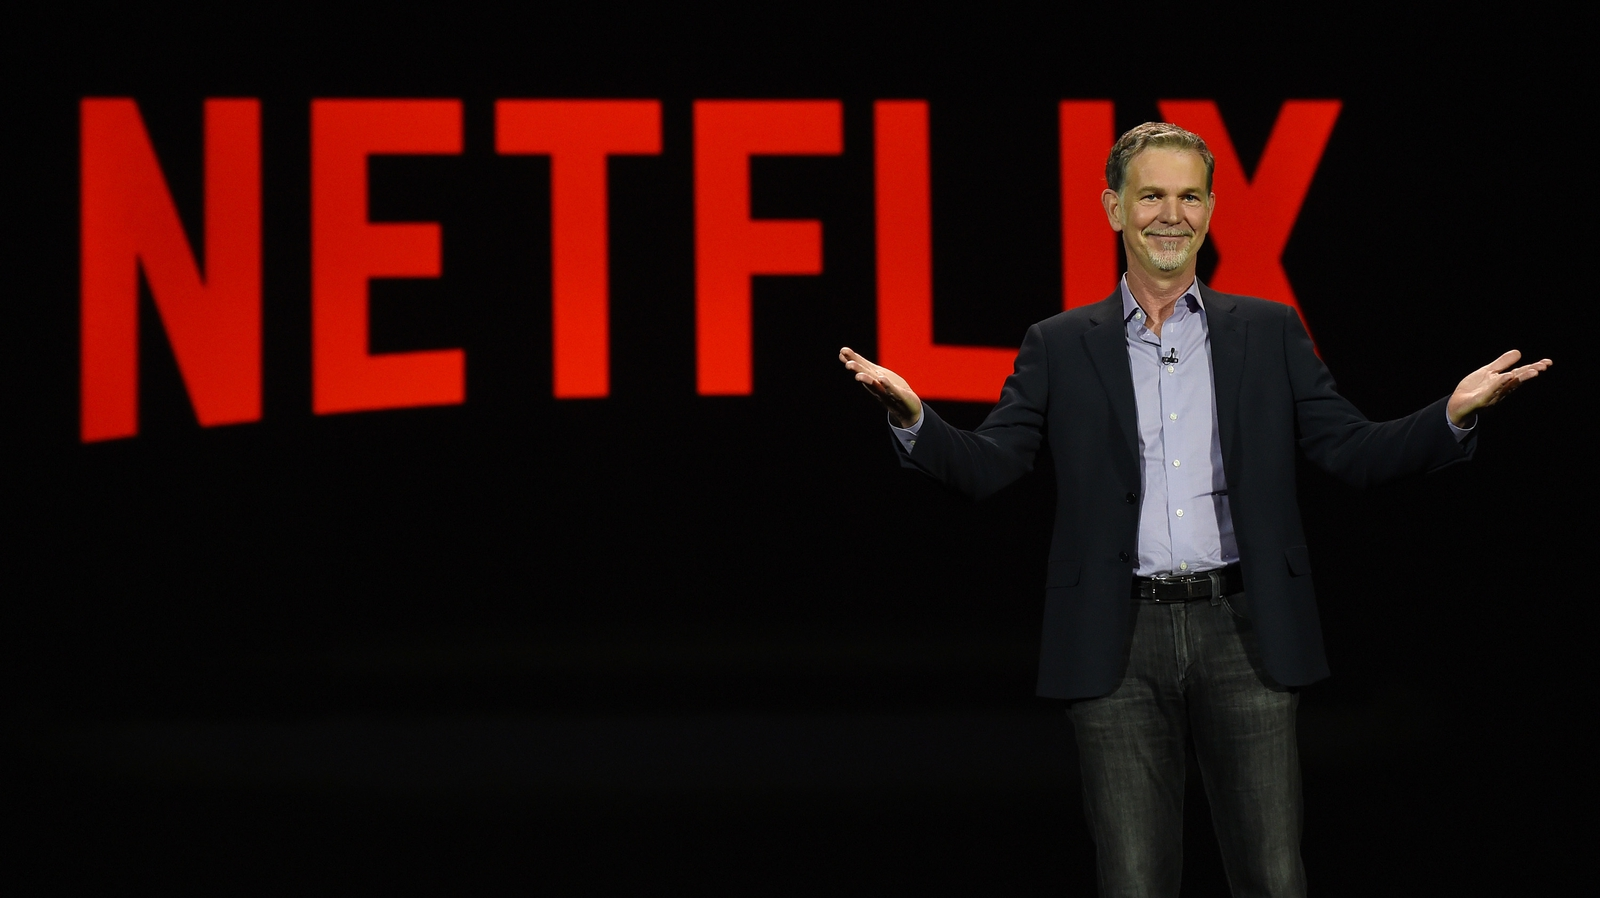 Image - Reed Hastings, Founder and CEO of Netflix